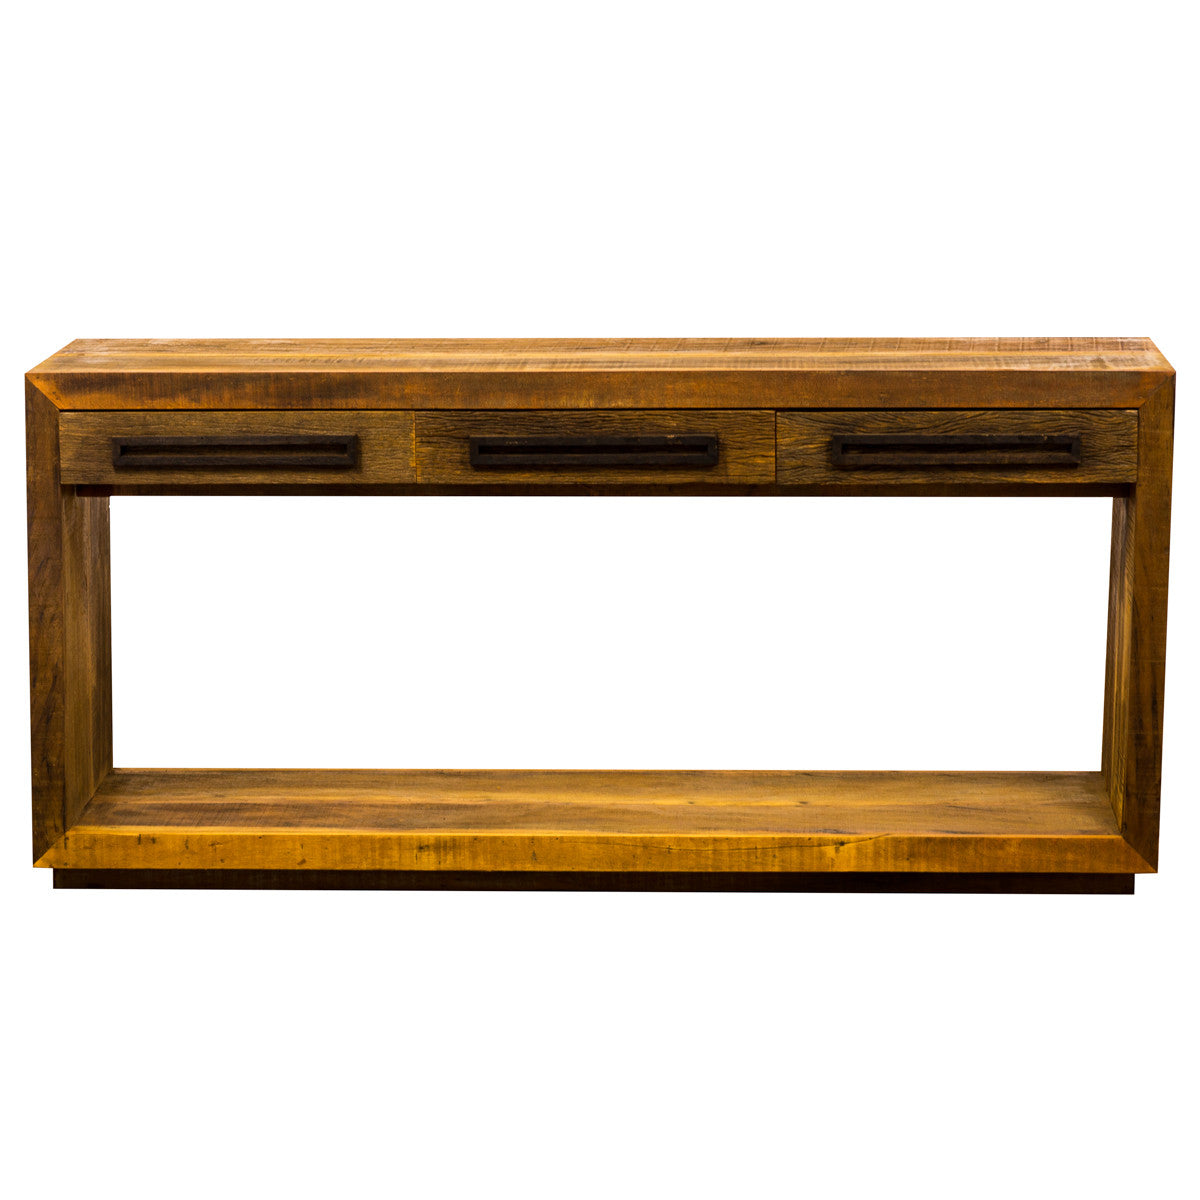 peroba wood furniture. Console, Console Table,sofa Table, Credenza, Sideboard, Reclaimed Wood Peroba Furniture